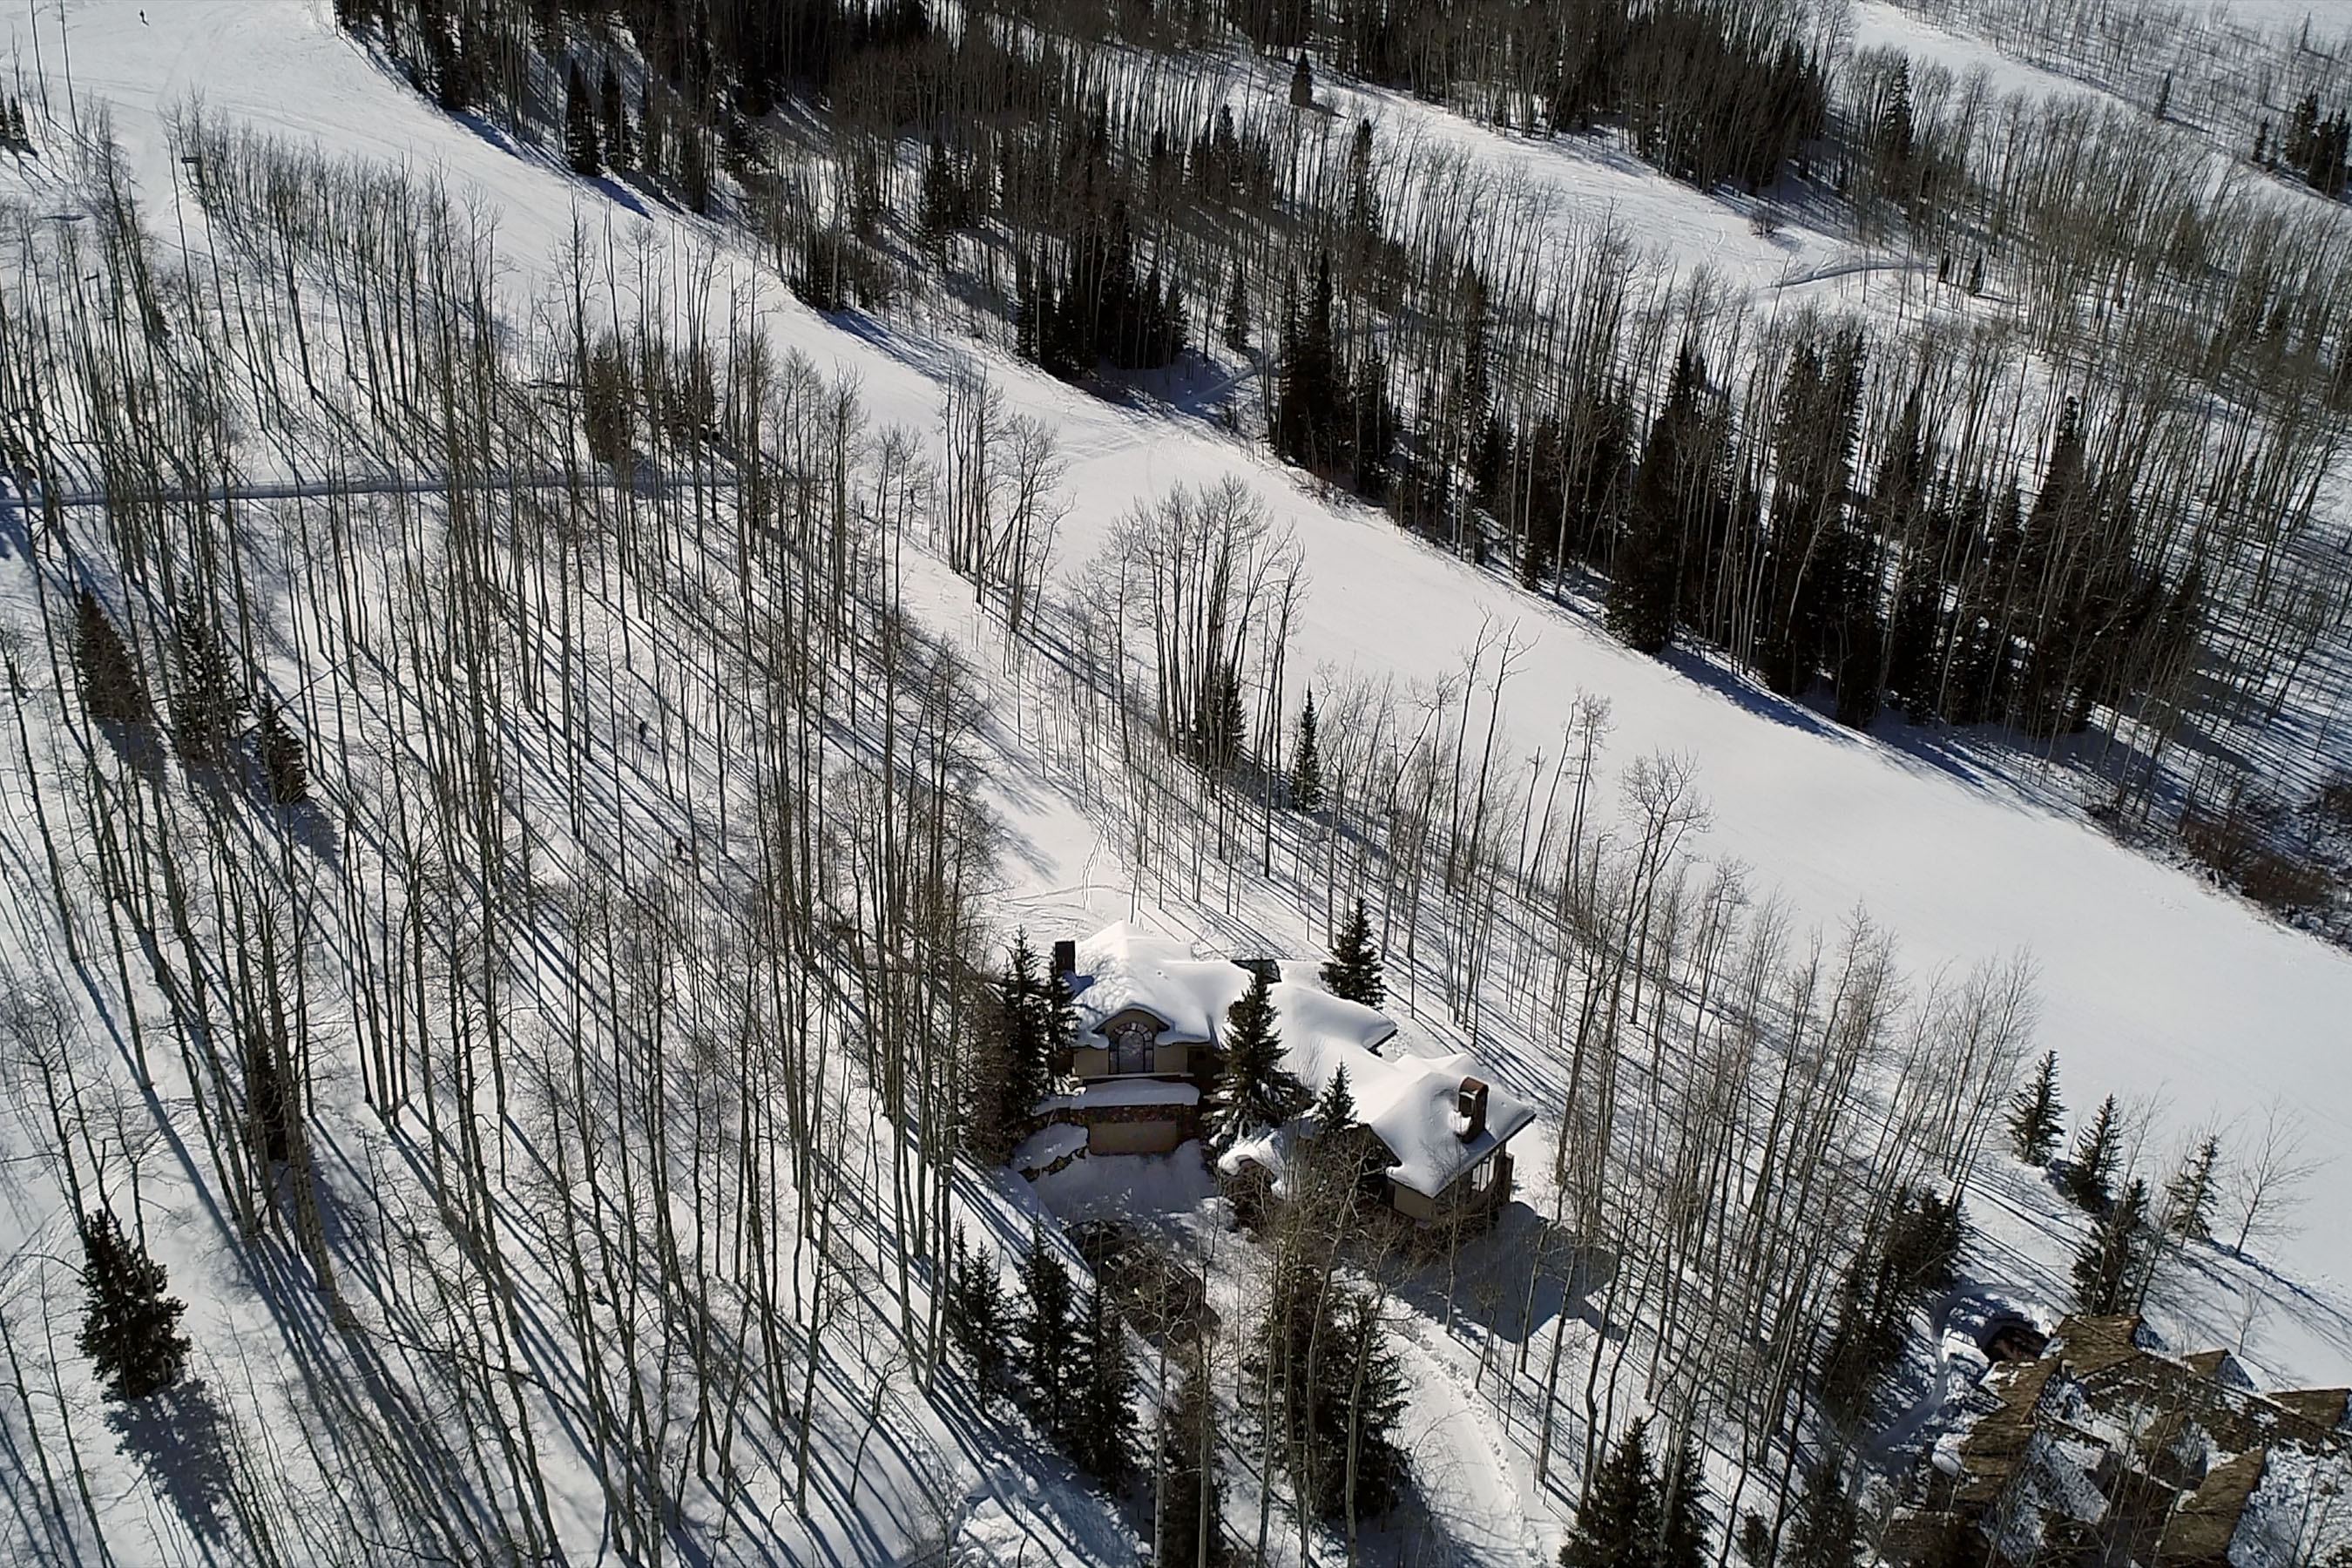 776 Divide Drive Snowmass Village Photo 4